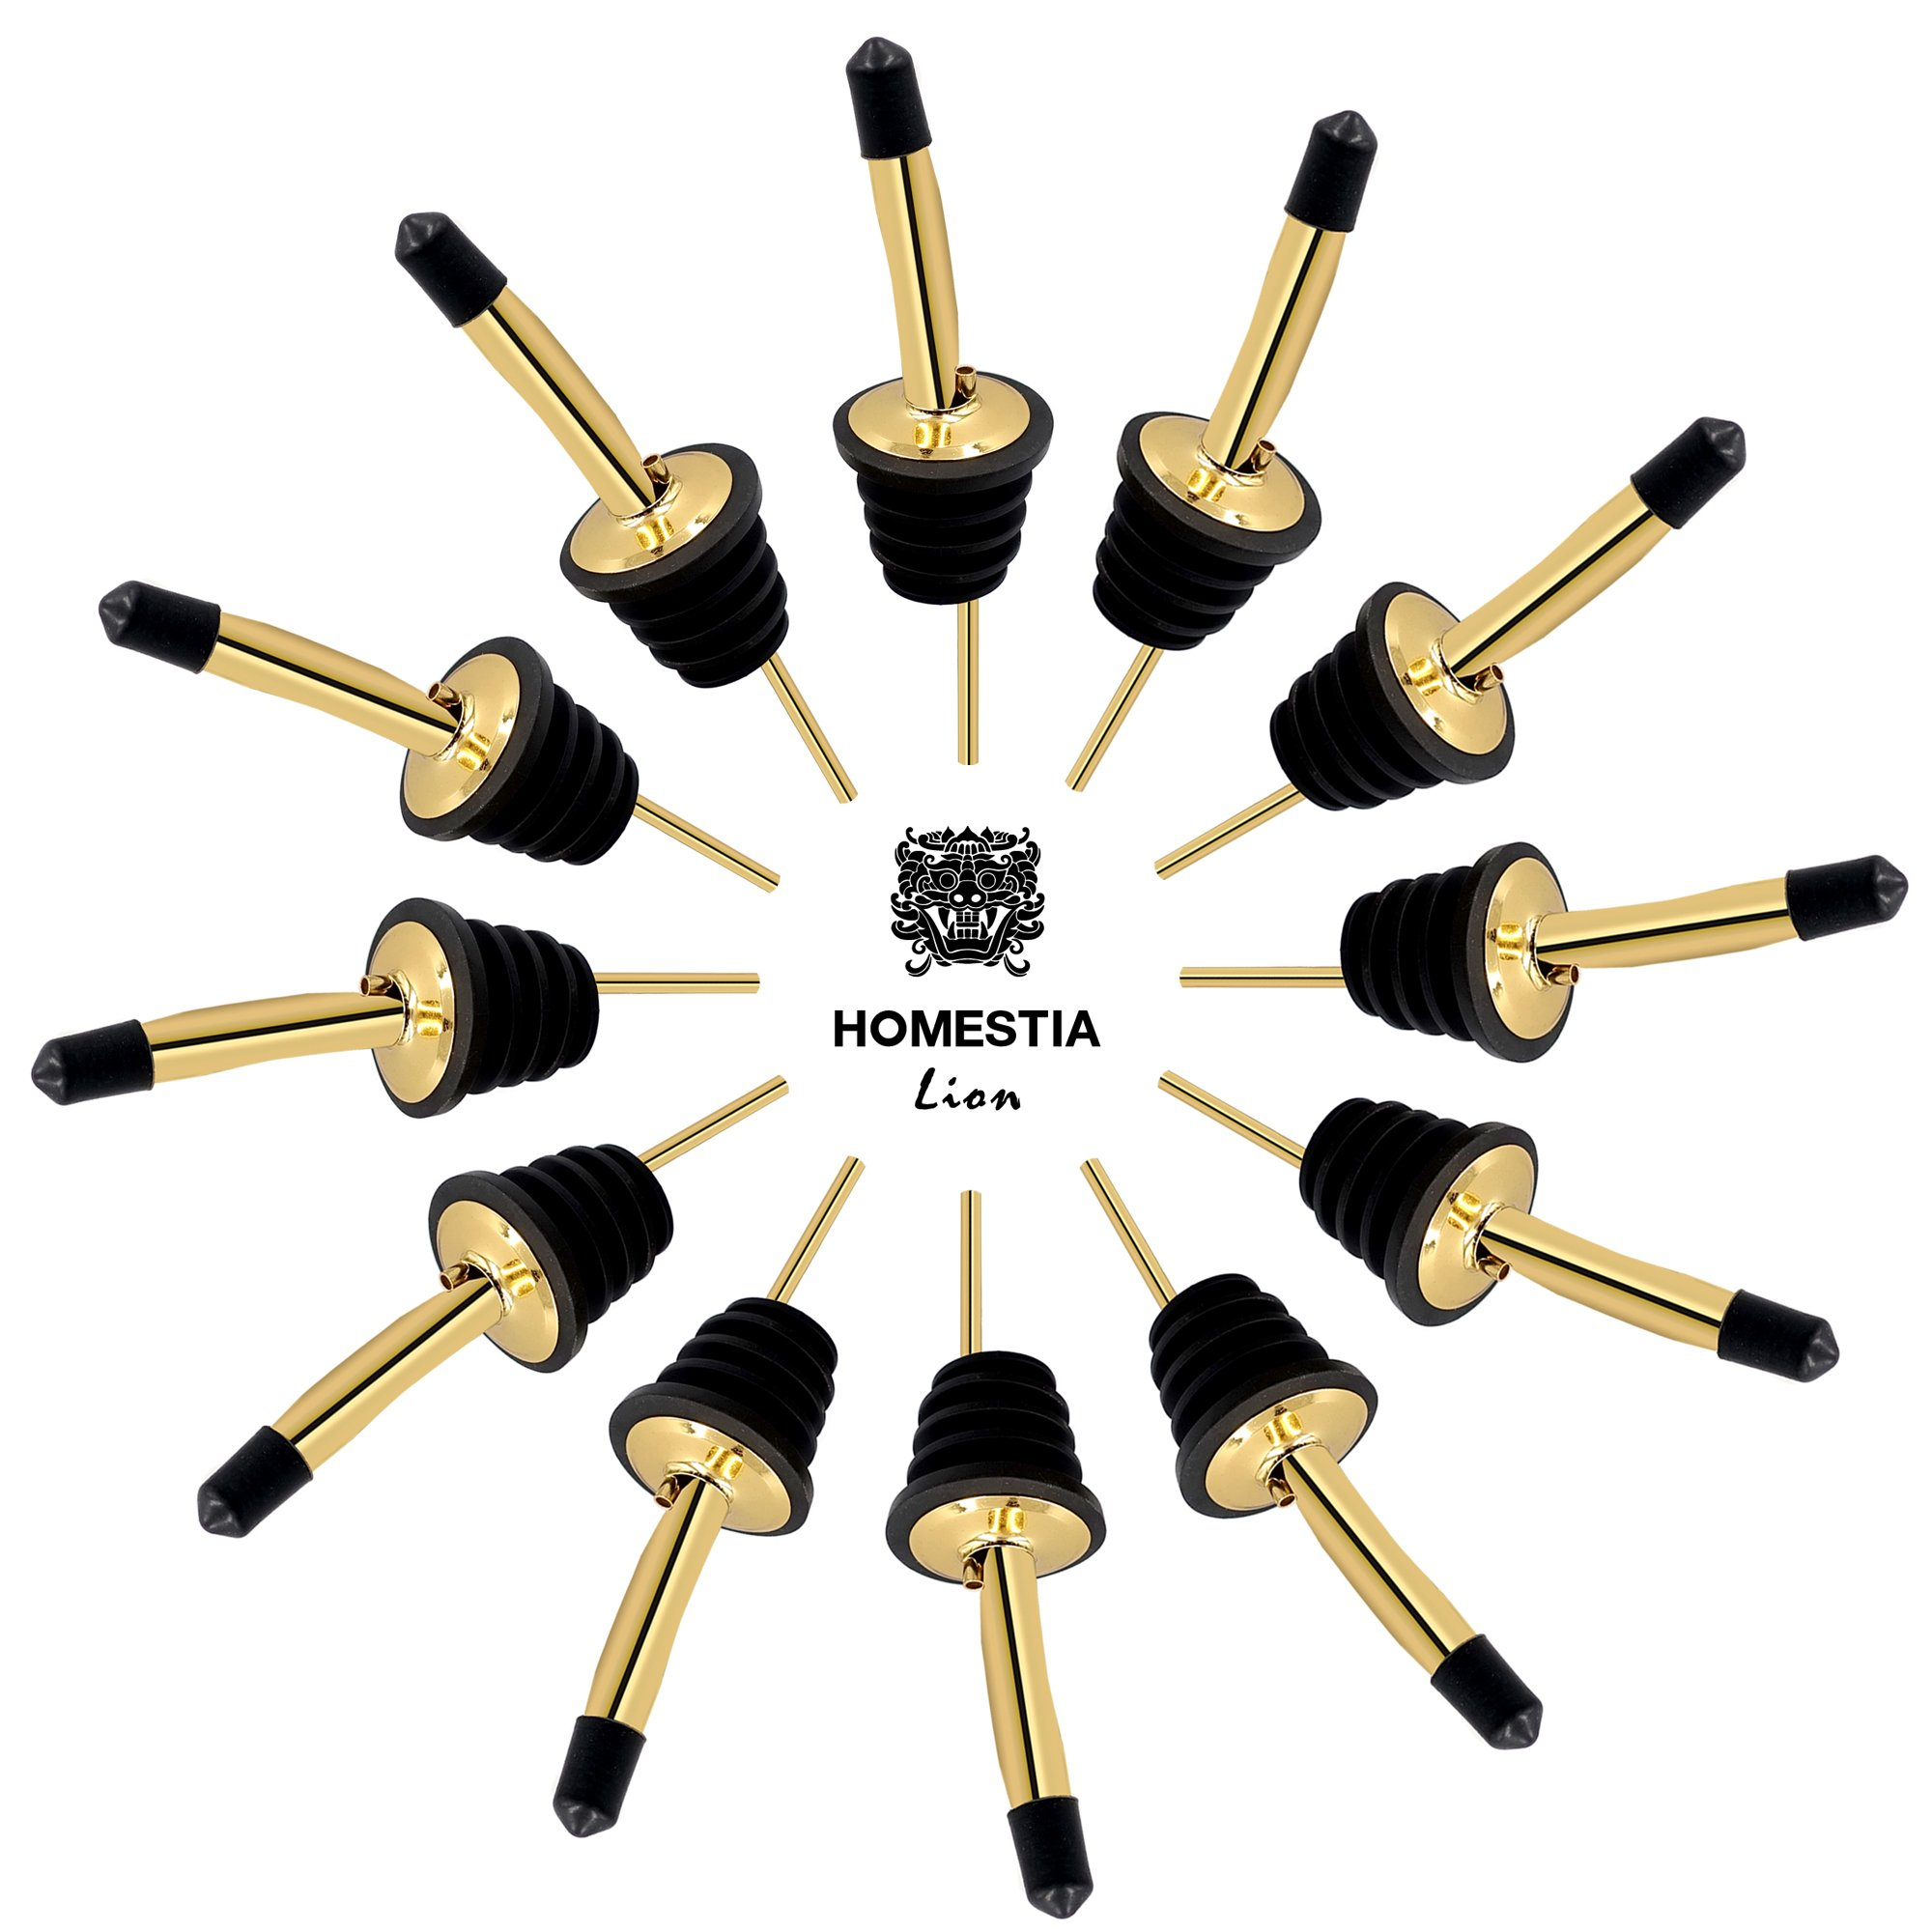 Bottle Pour Spout 12 Pack Stainless Steel Cocktail Pourer with 15 Dust Caps by Homestia, Gold